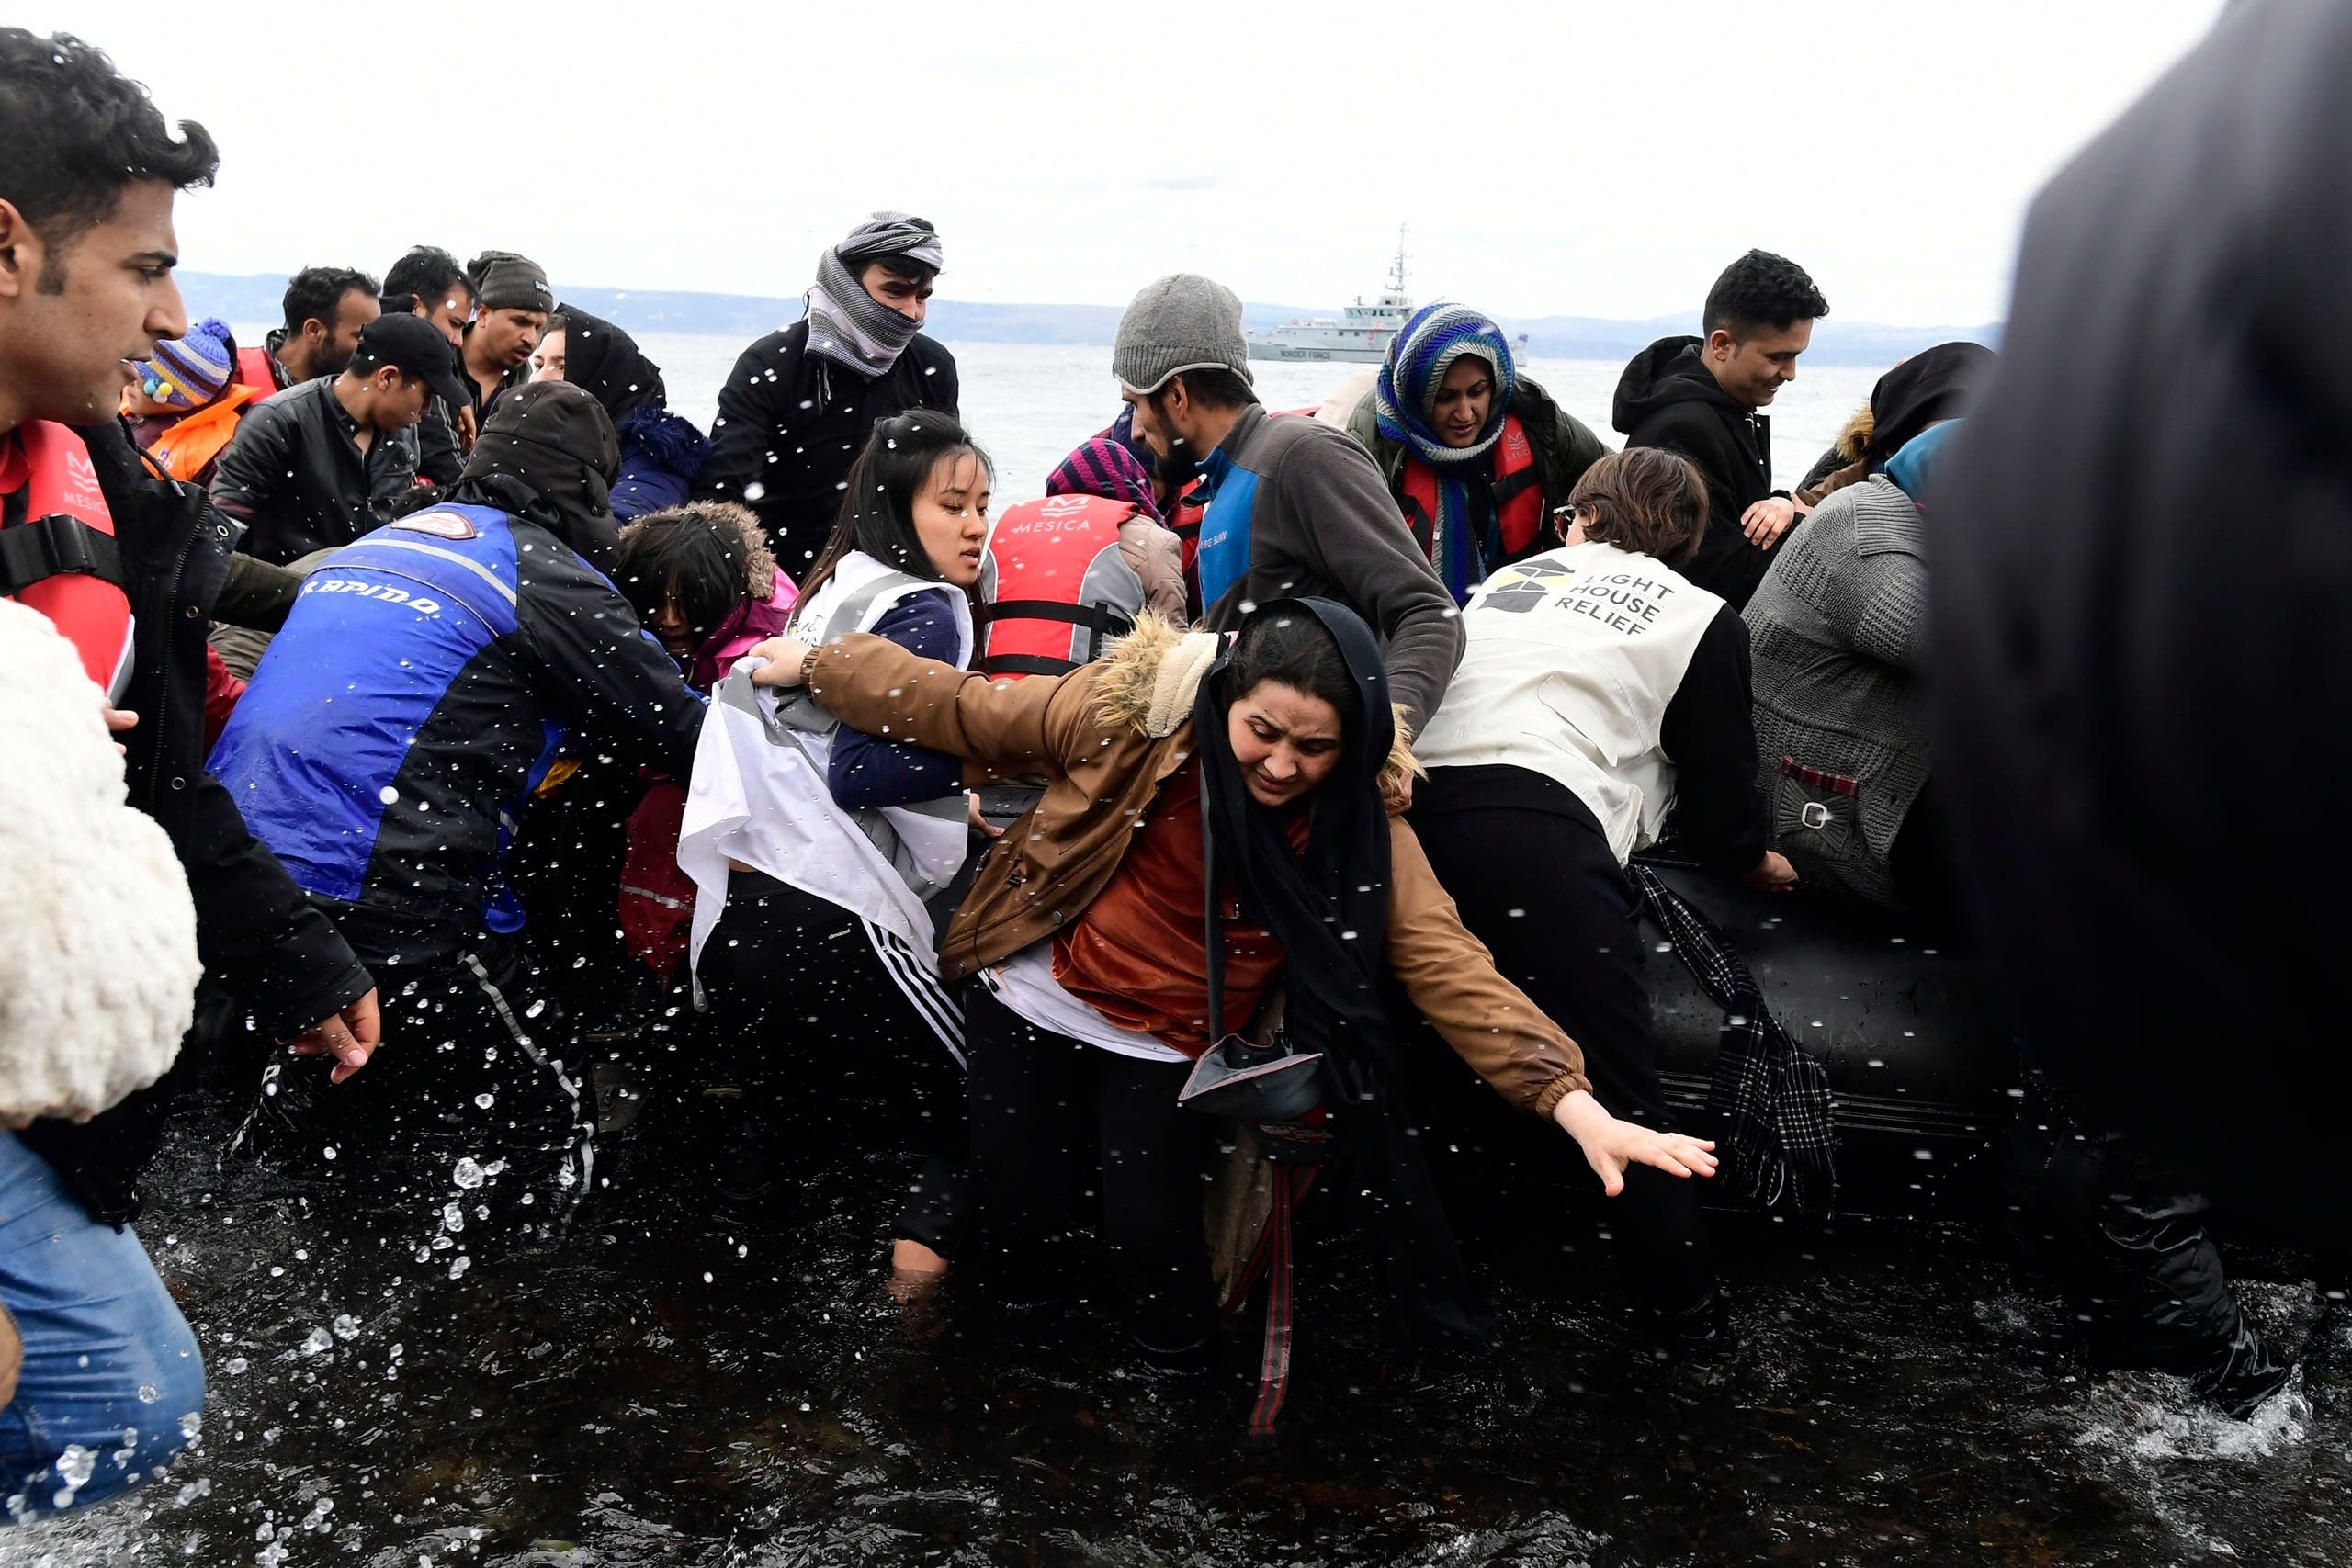 Migrants arrive with a dinghy at the village of Skala Sikaminias, on the Greek island of Lesbos, after crossing the Aegean sea from Turkey, on Friday, Feb. 28, 2020. (AP)